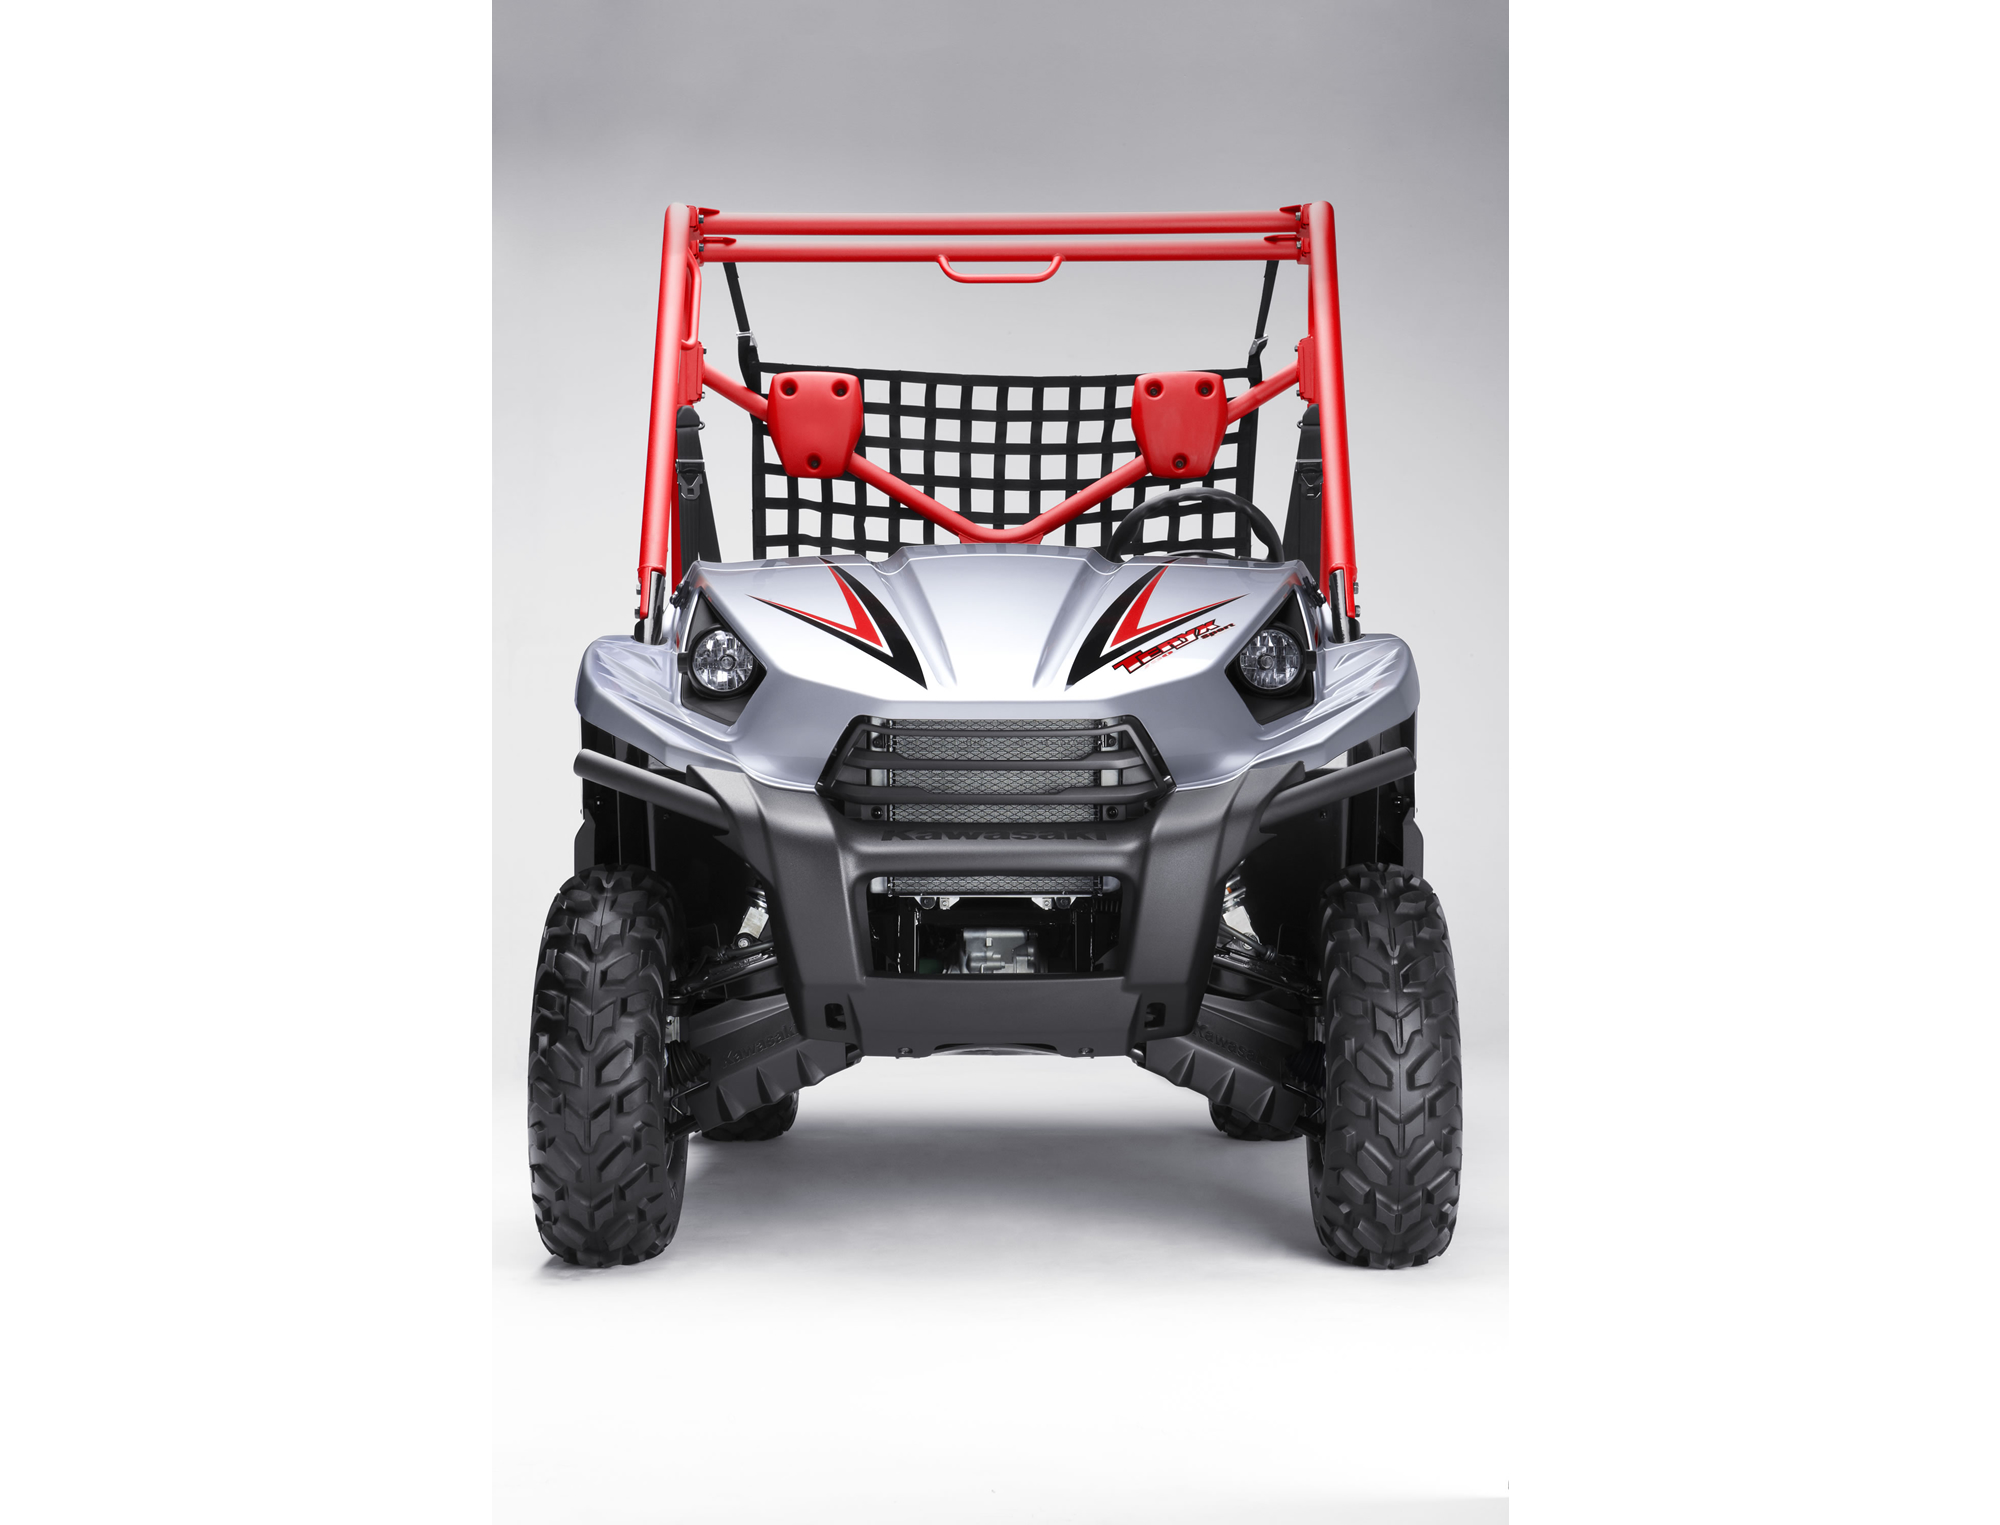 kawasaki mule 610 wiring diagram images mule 3010 wiring diagram 2014 kawasaki teryx wiring diagram automotive